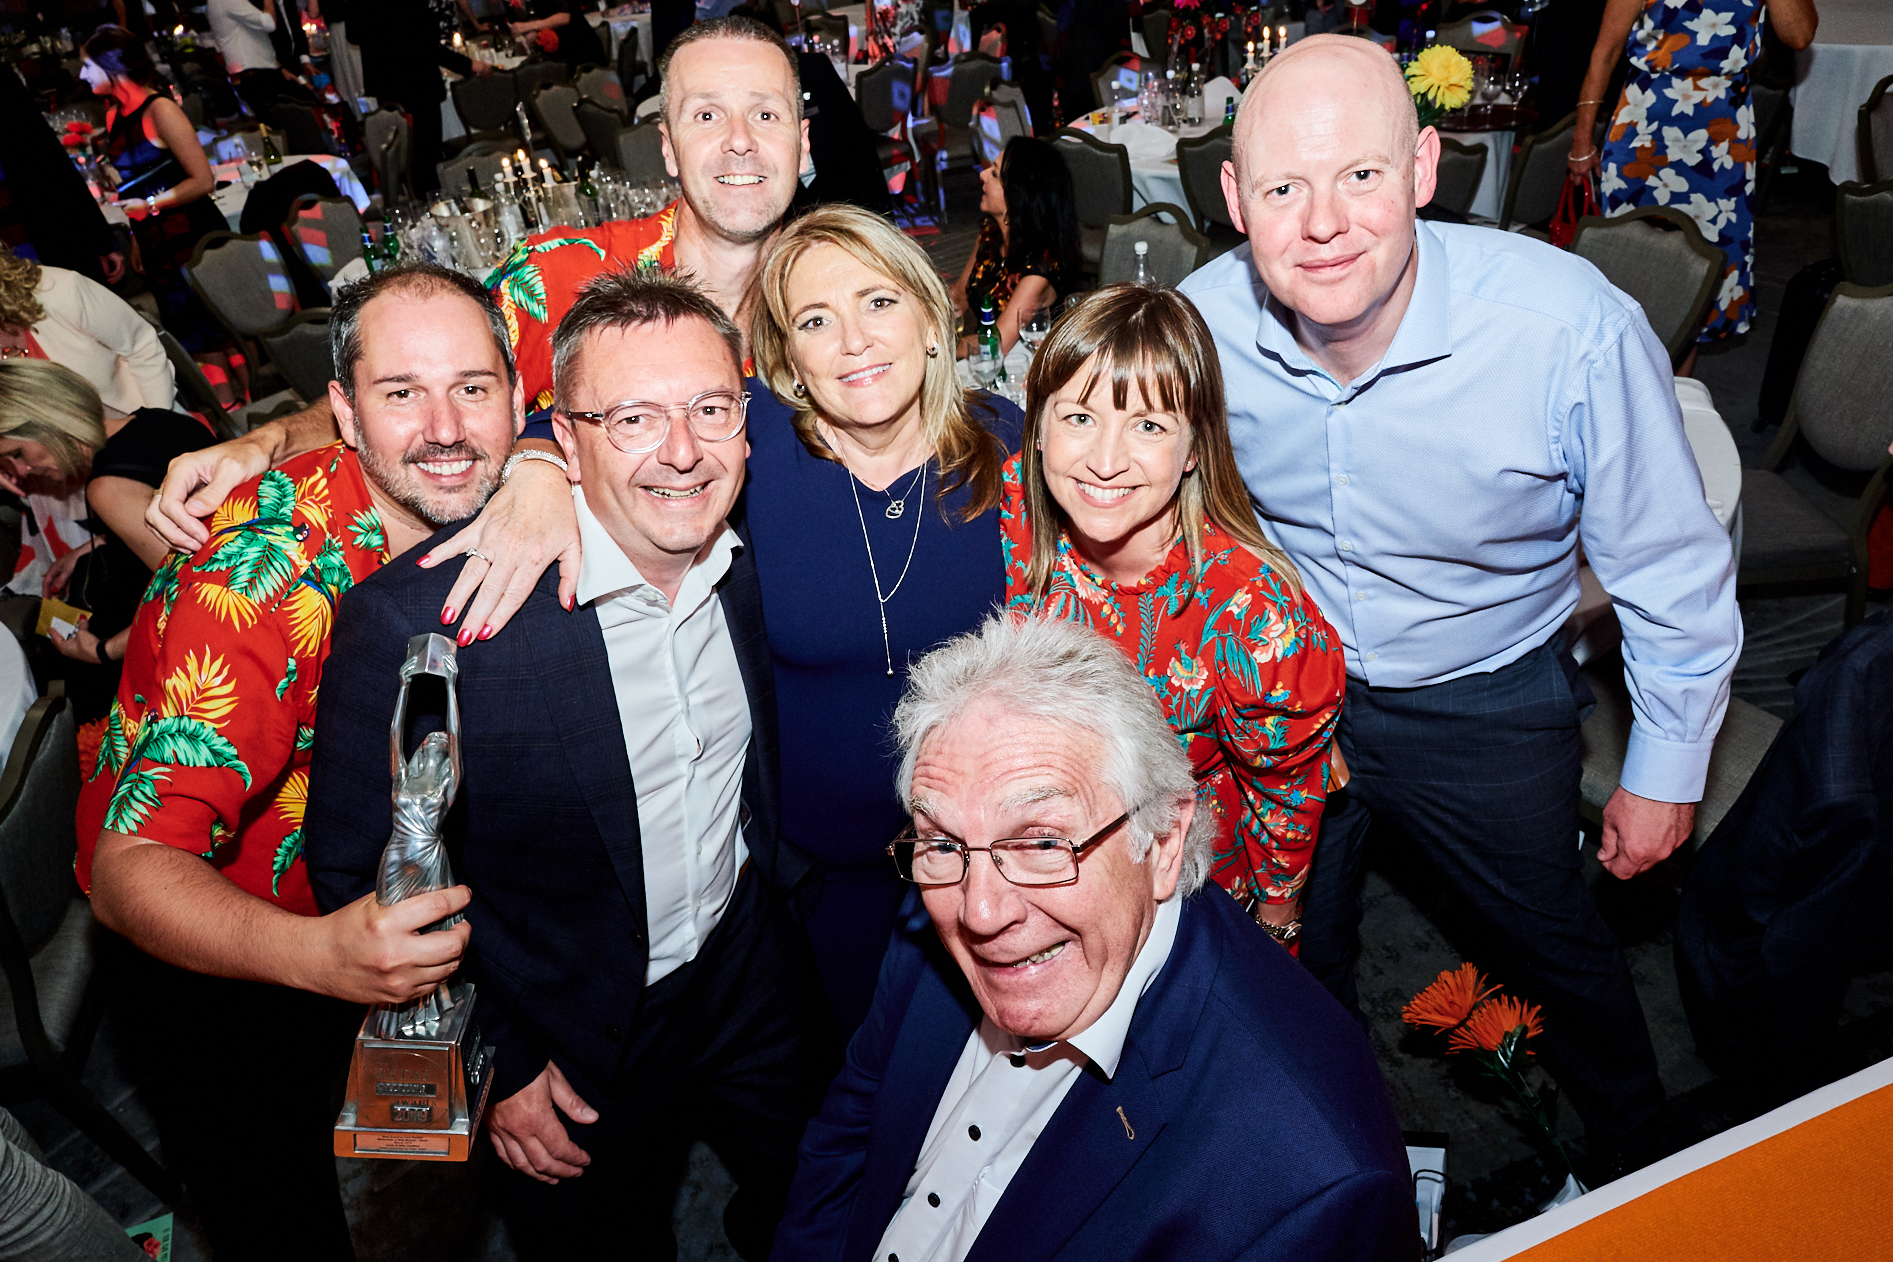 Above: Just think how great would it be for everyone to be together at The Retas 2021 in mid July! A scene from the 2019 event of happy retailers and publishers.